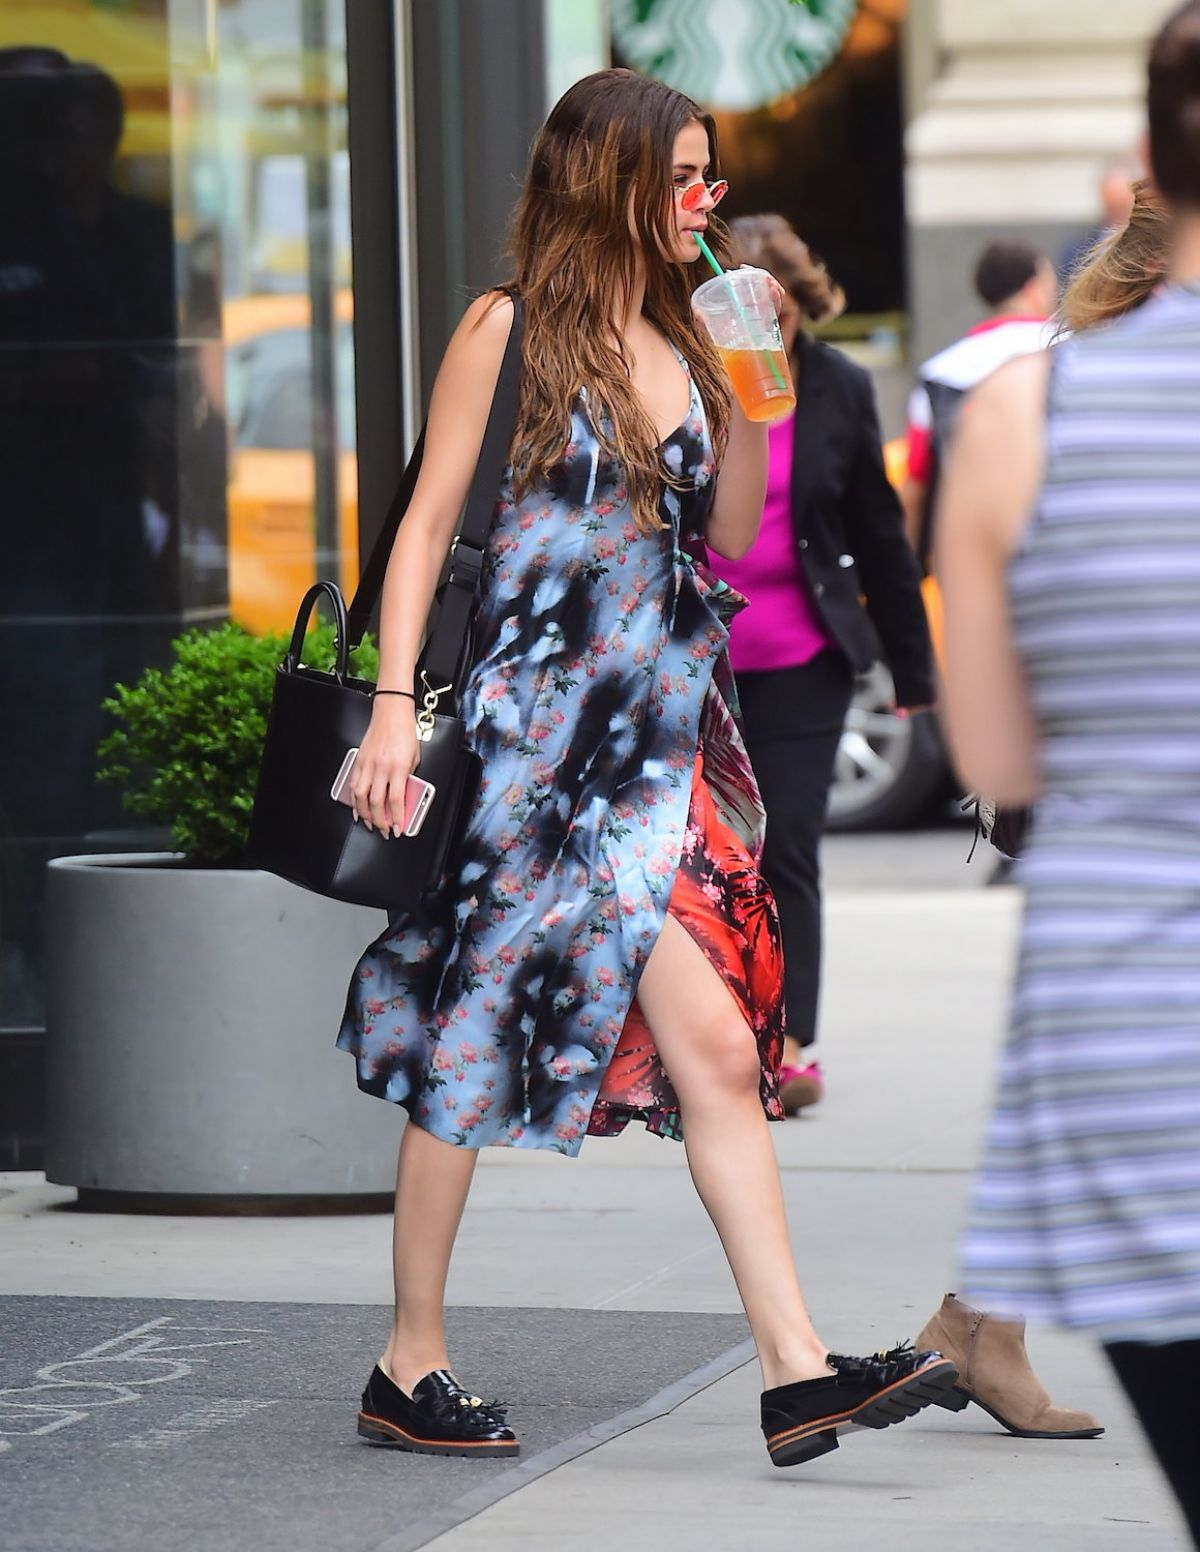 selena-gomez-out-and-about-in-new-york-06-01-2016_1.jpg